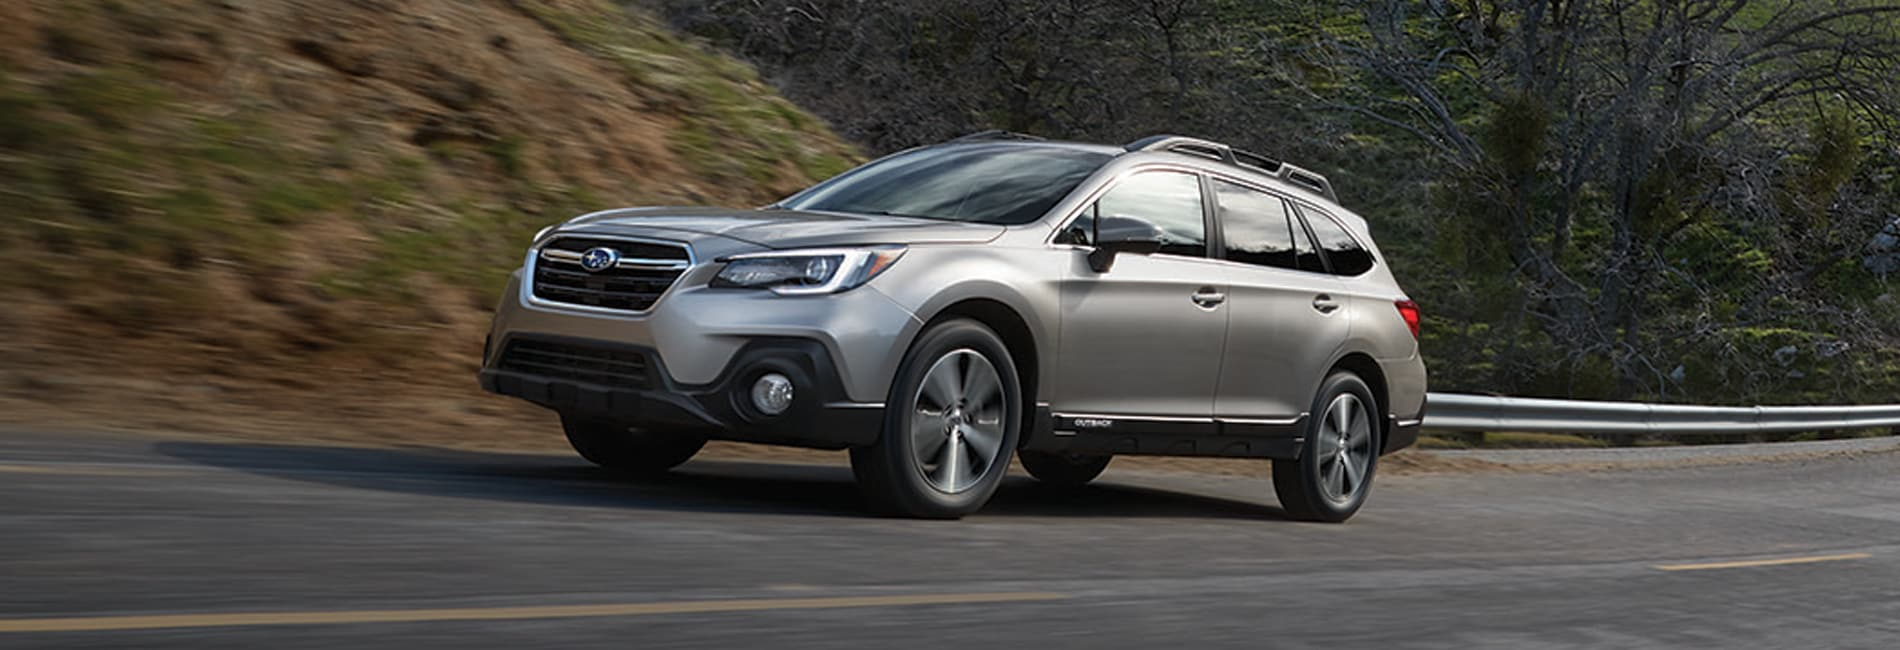 2018 Subaru Outback  Exterior Features